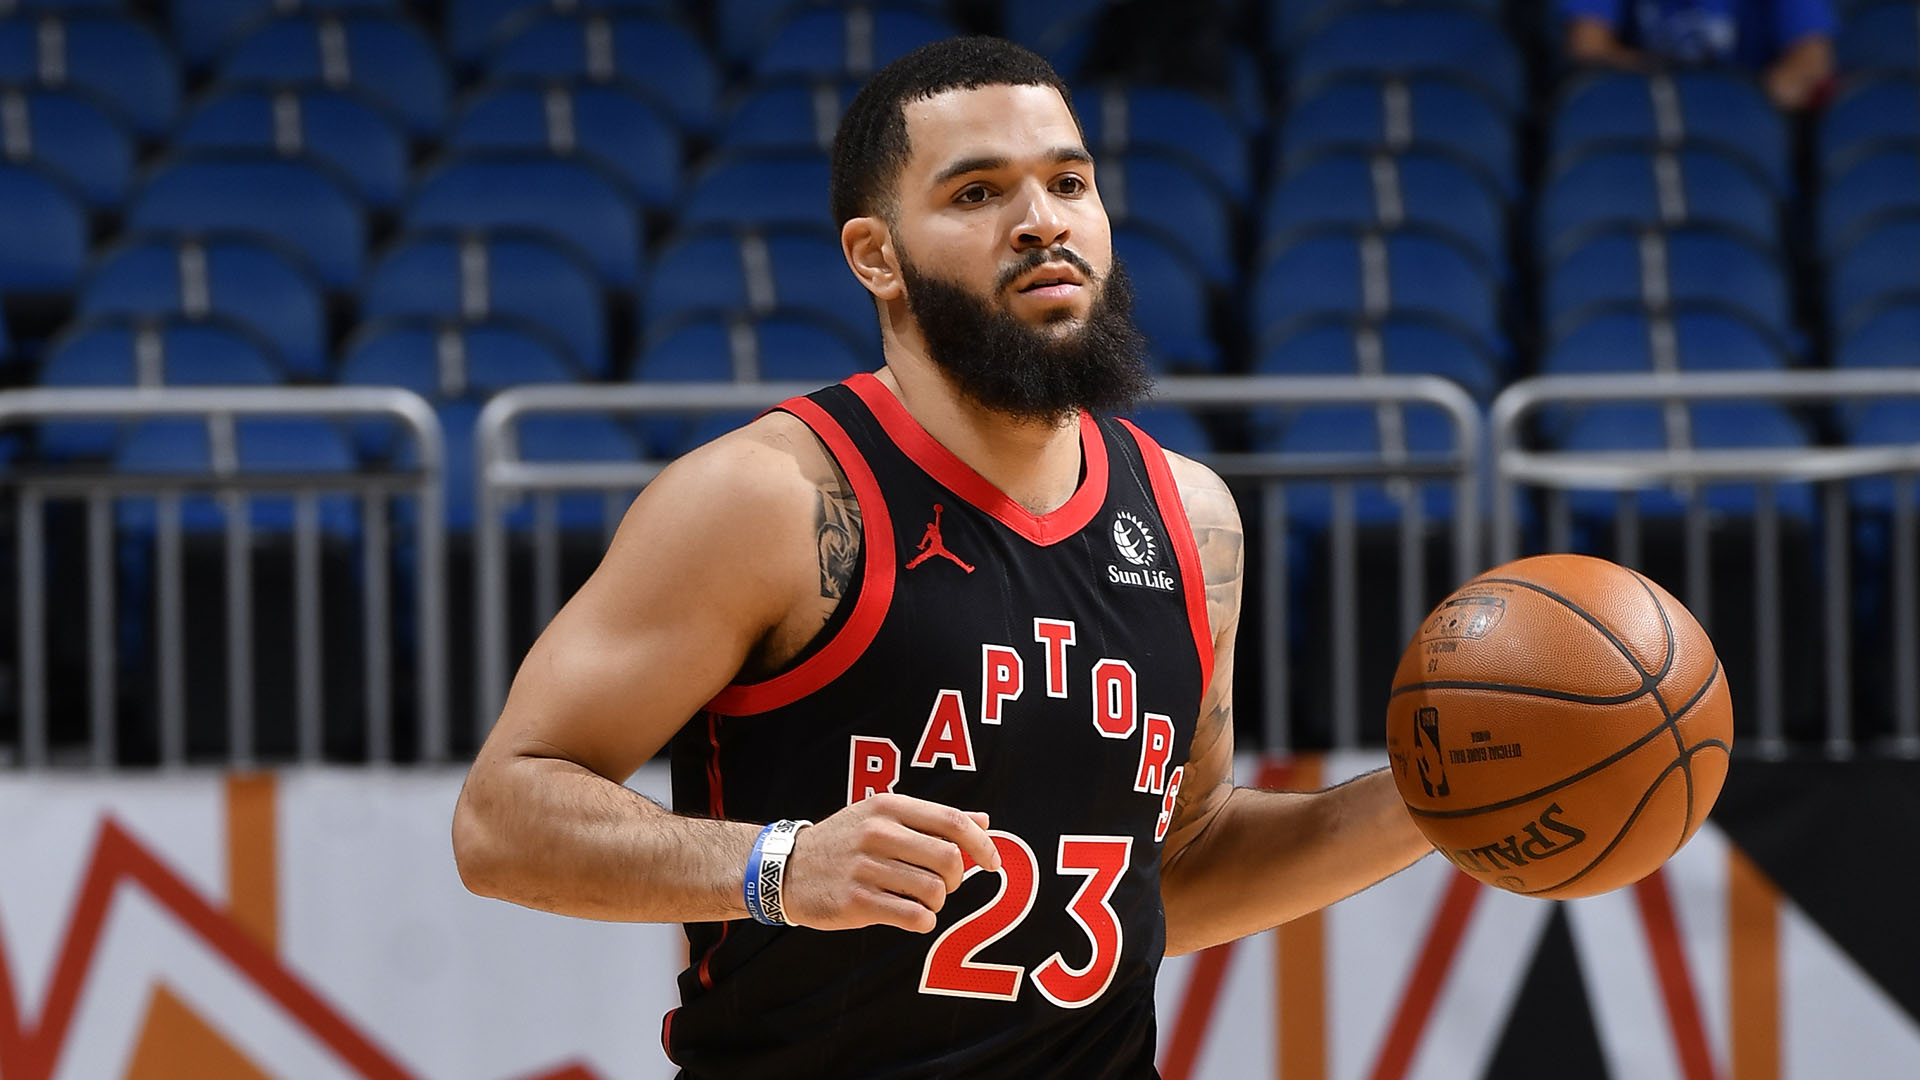 3 stats facts to know from Fred VanVleet's 54-point game